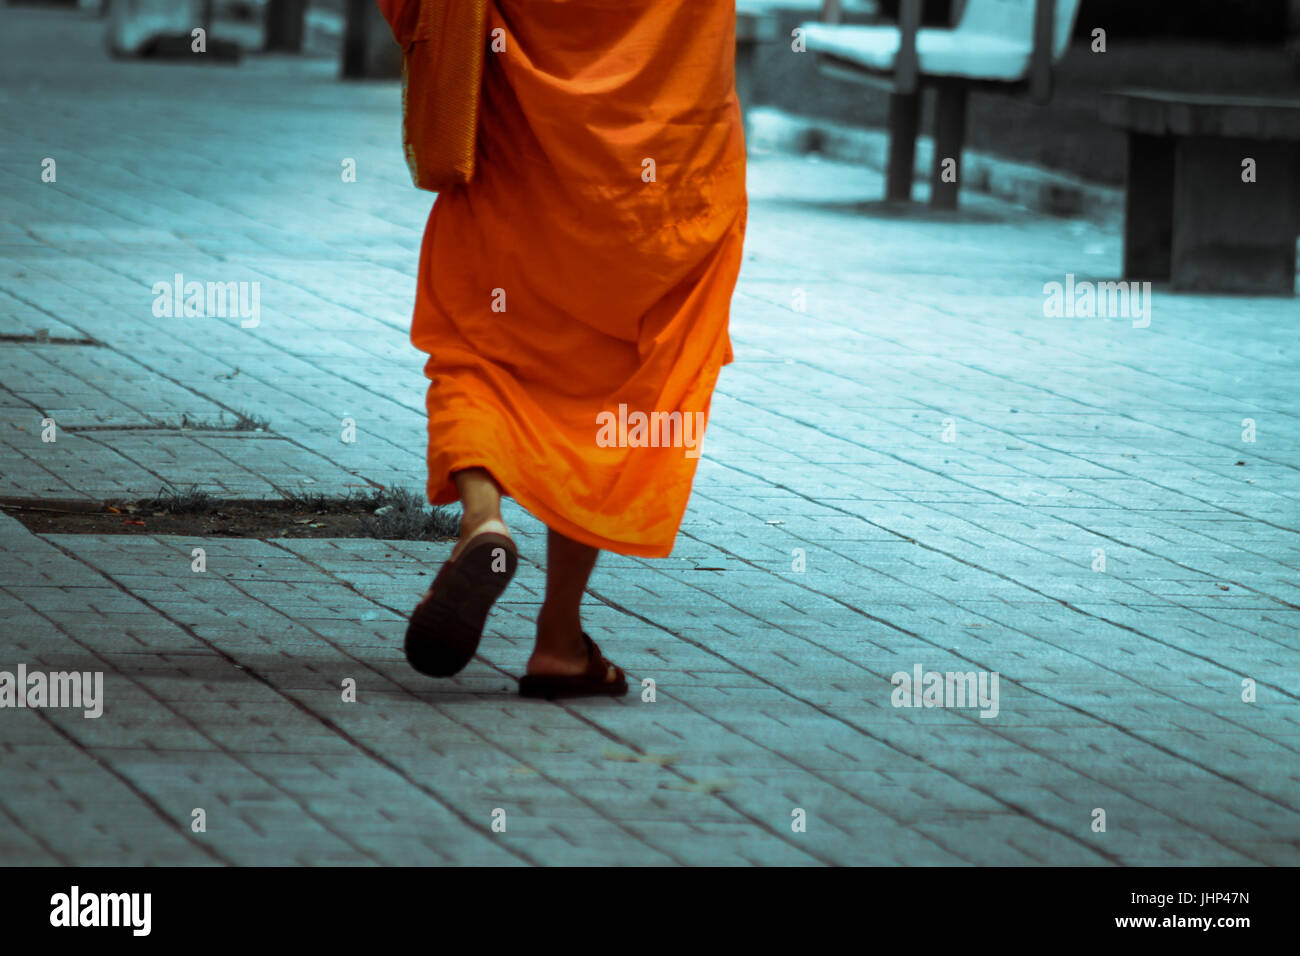 Walk away from the evils of the world - Stock Image